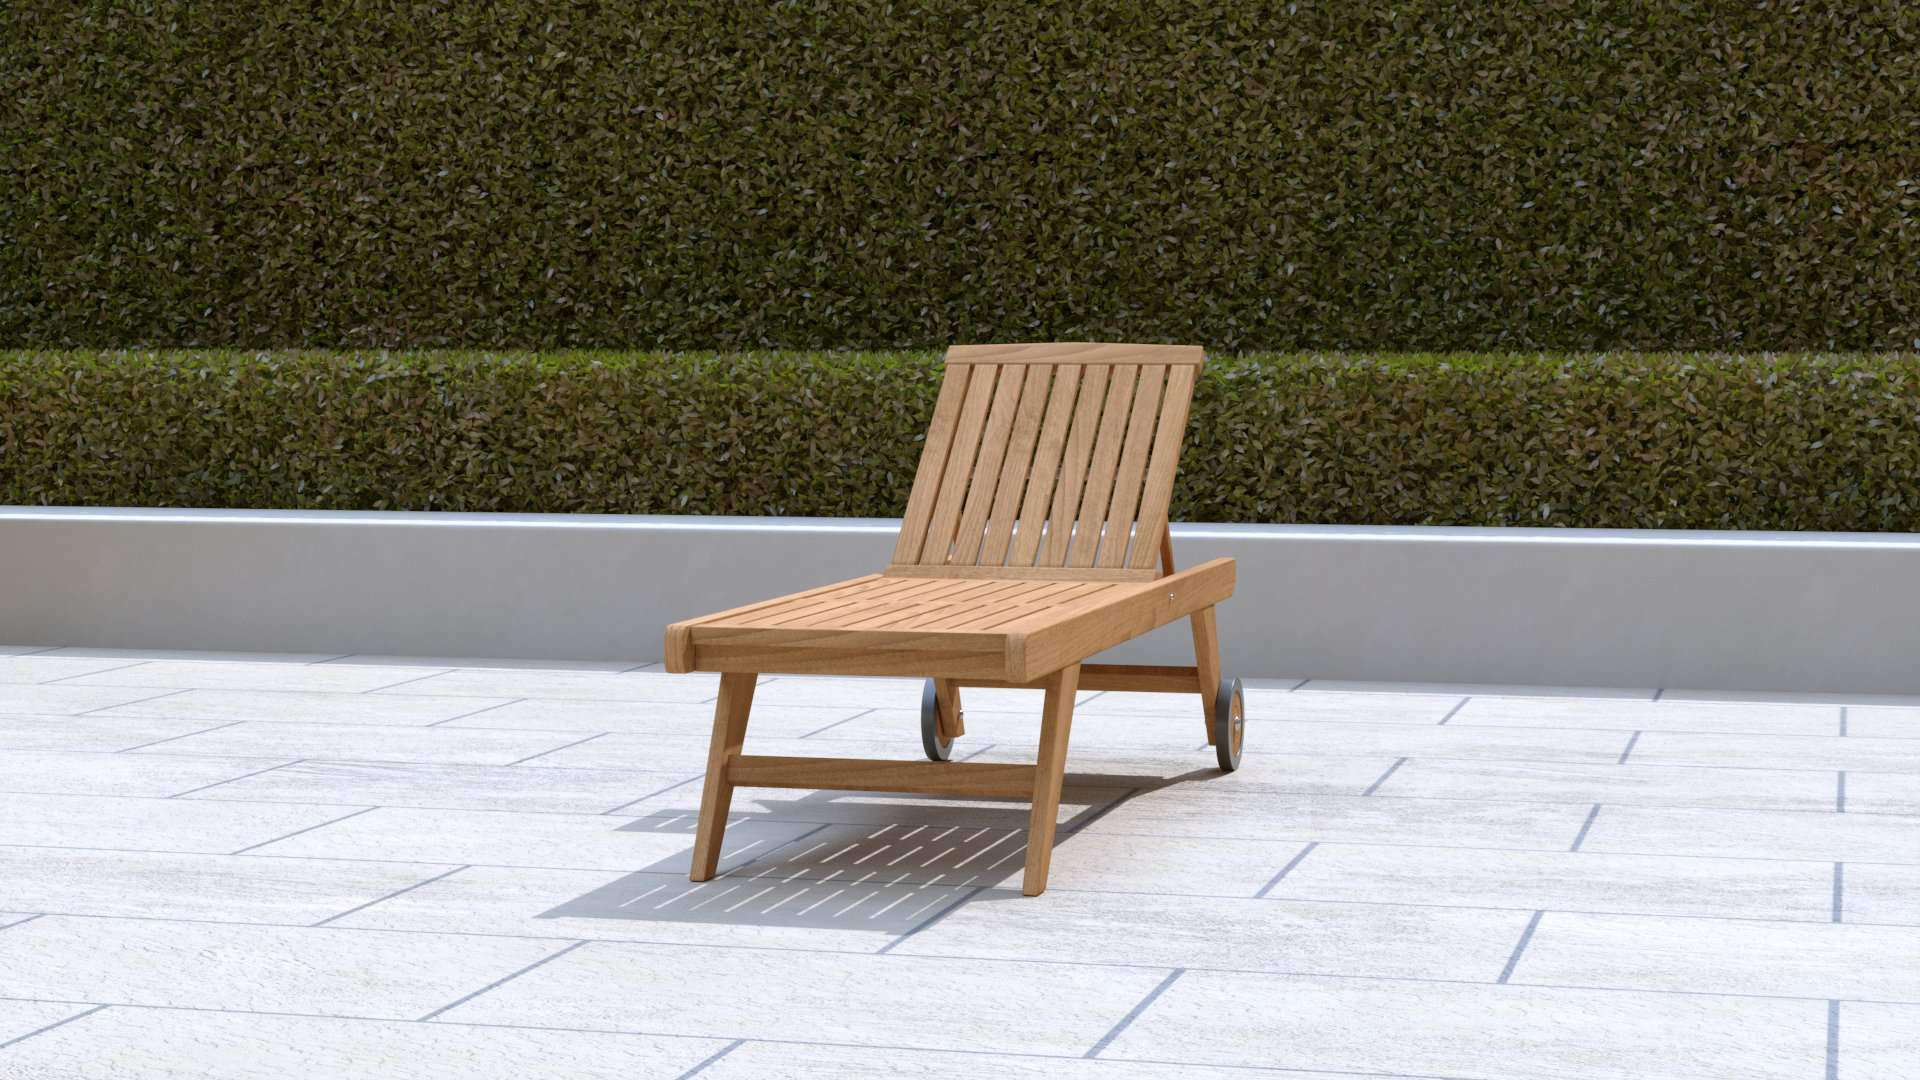 Teak Sun Lounger High Level with Wheels (Cocoa Cushion)  - Chic Teak® | Luxury Teak Furniture